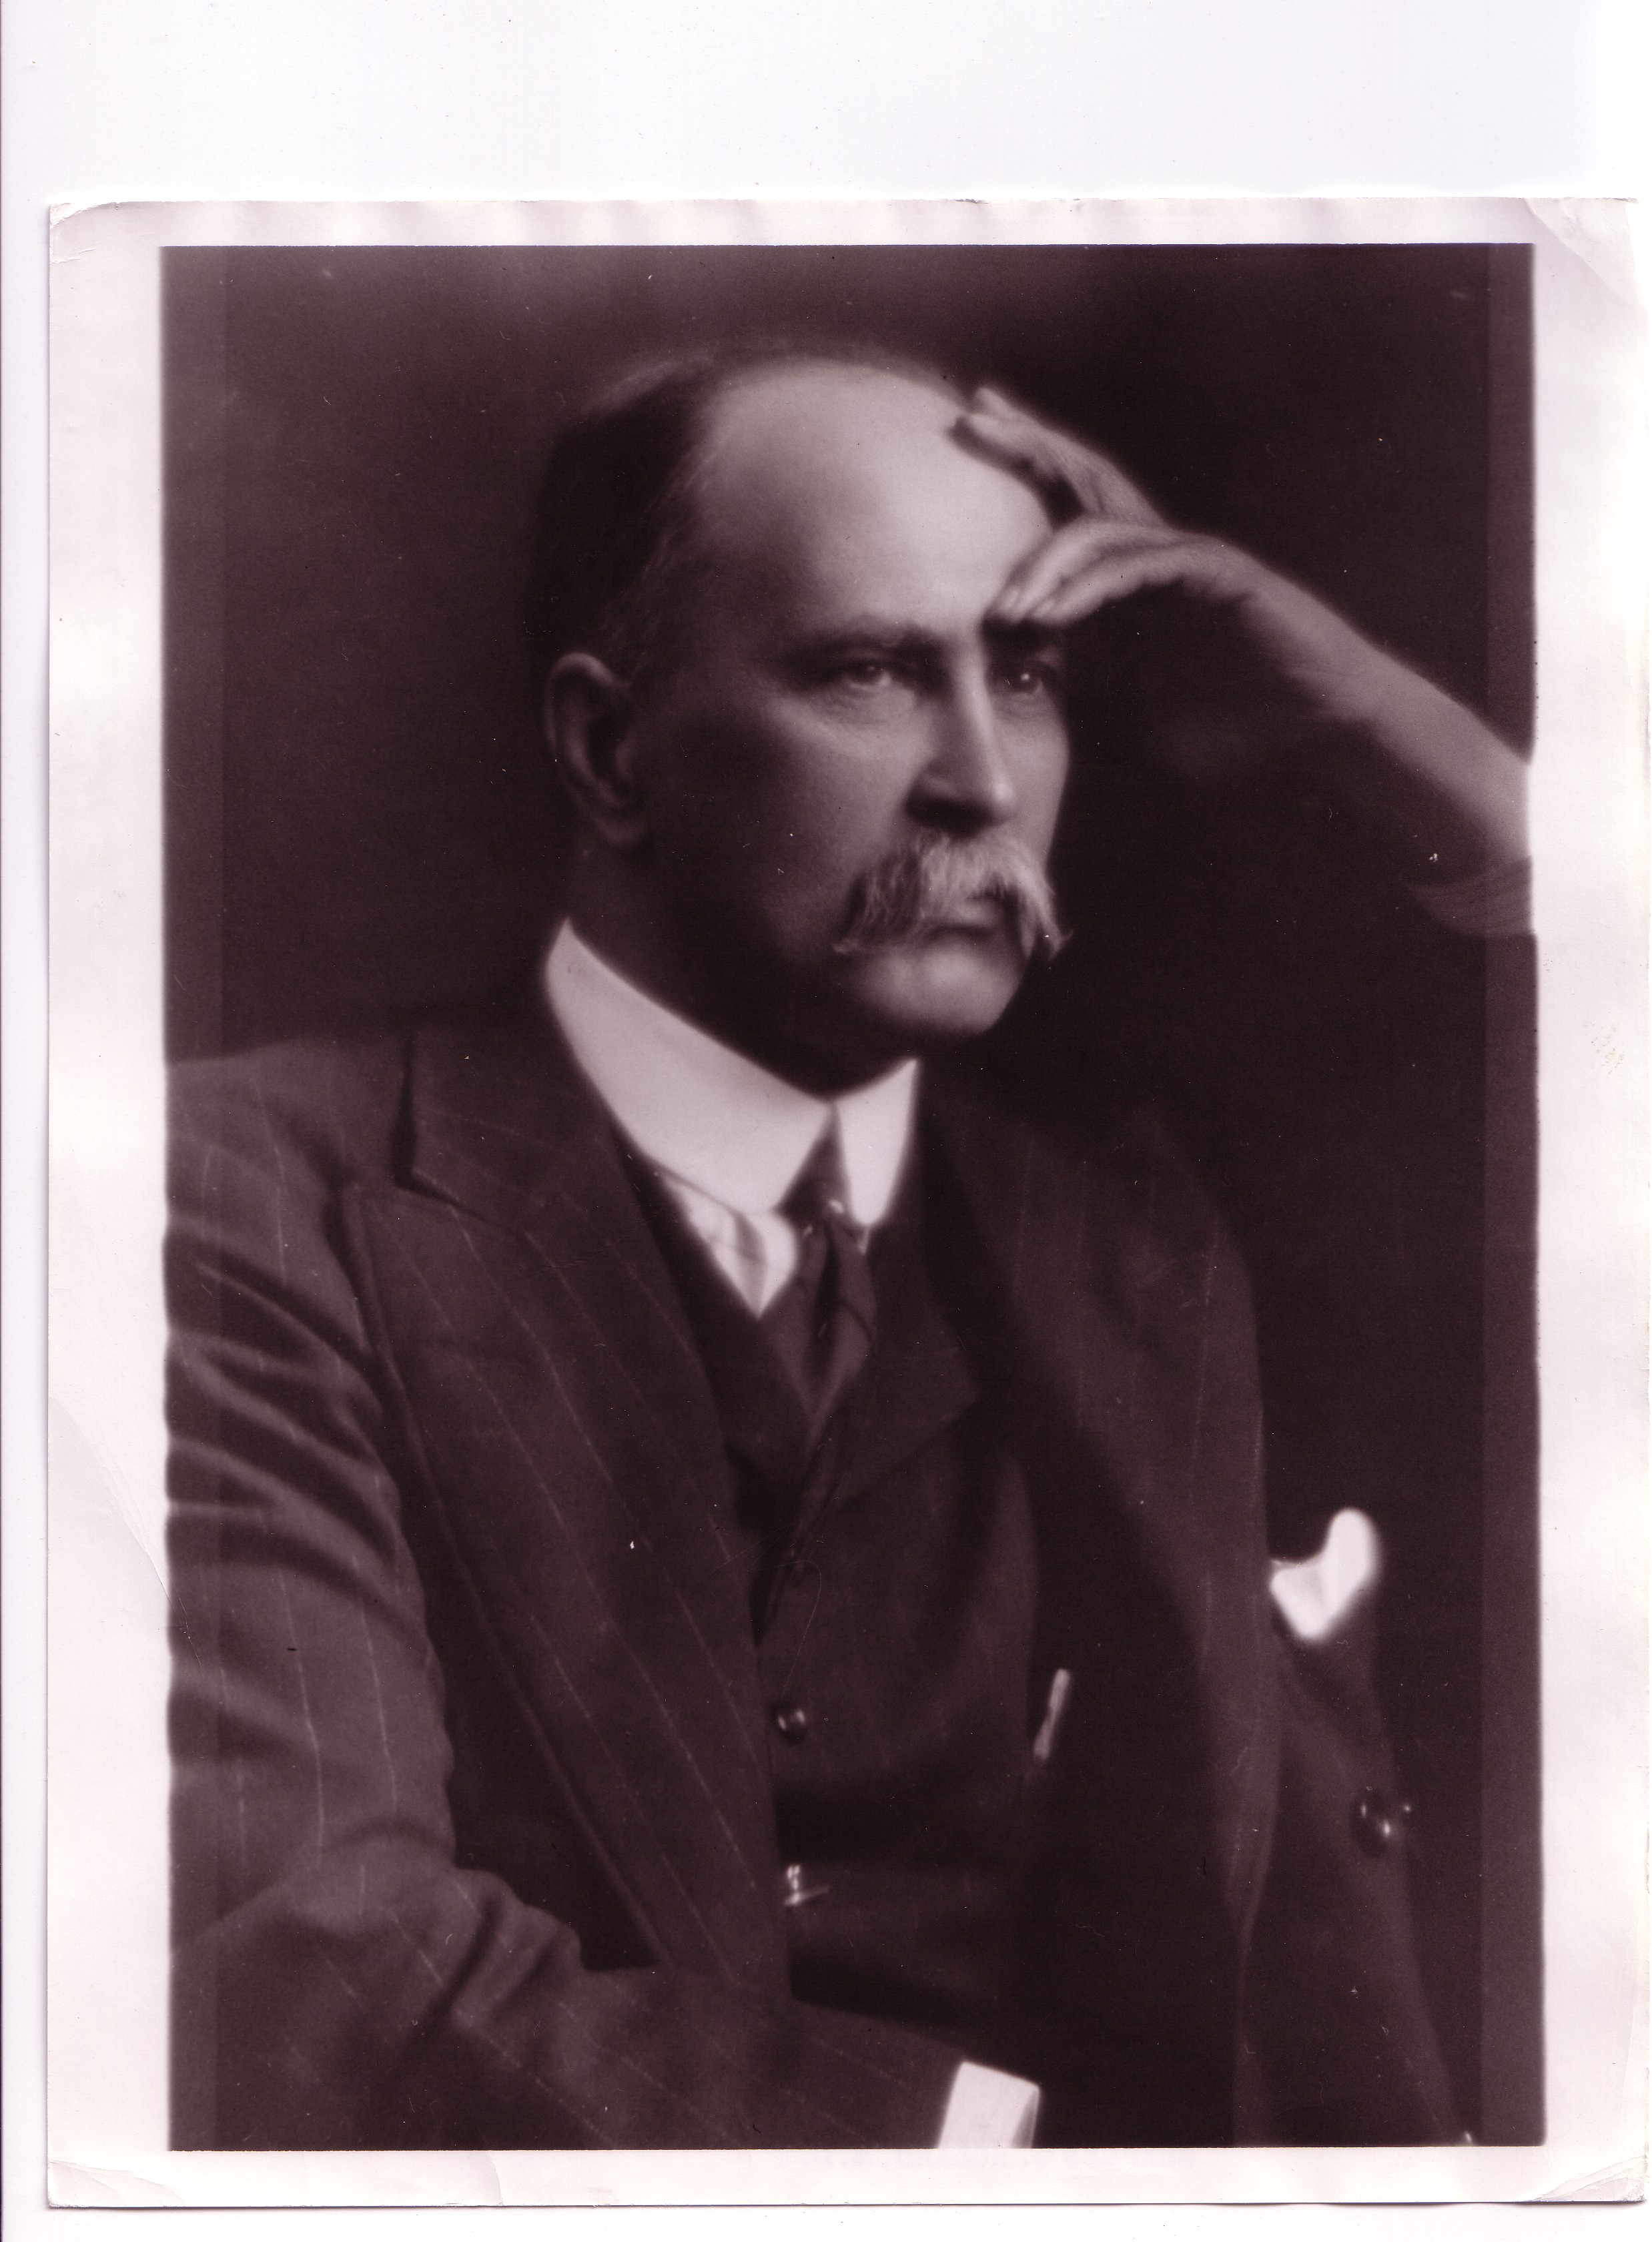 Photograph of Dr. William Osler, 1849-1919